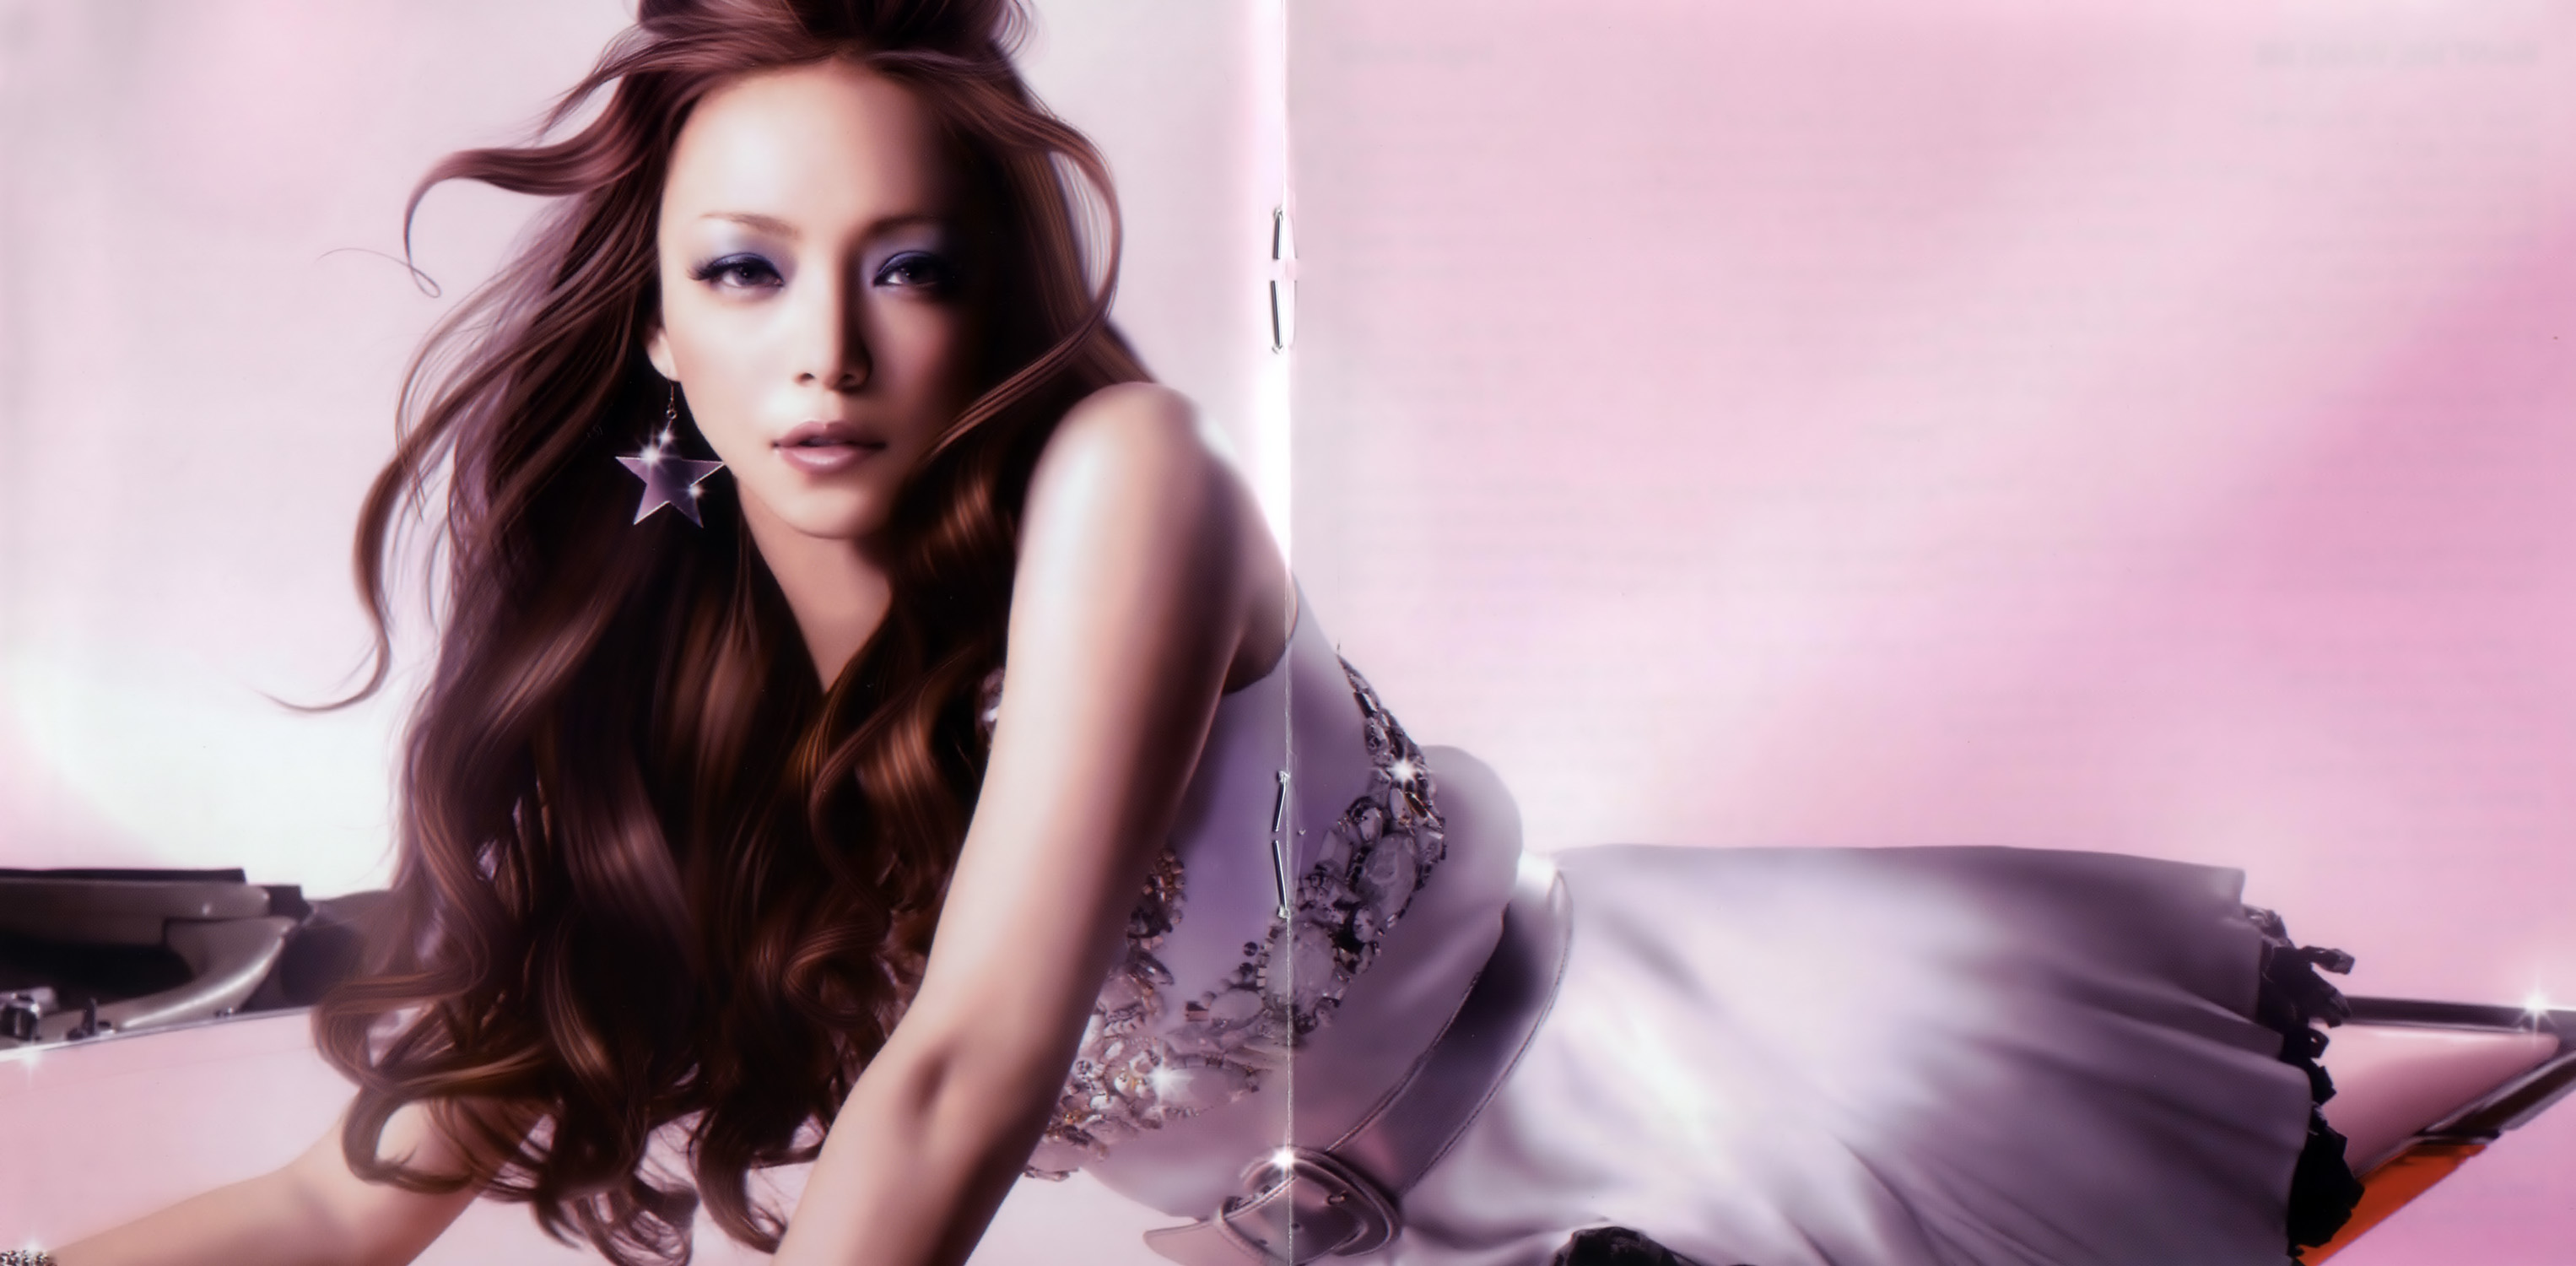 Discussion on this topic: Heather Hemmens, amuro-namie/